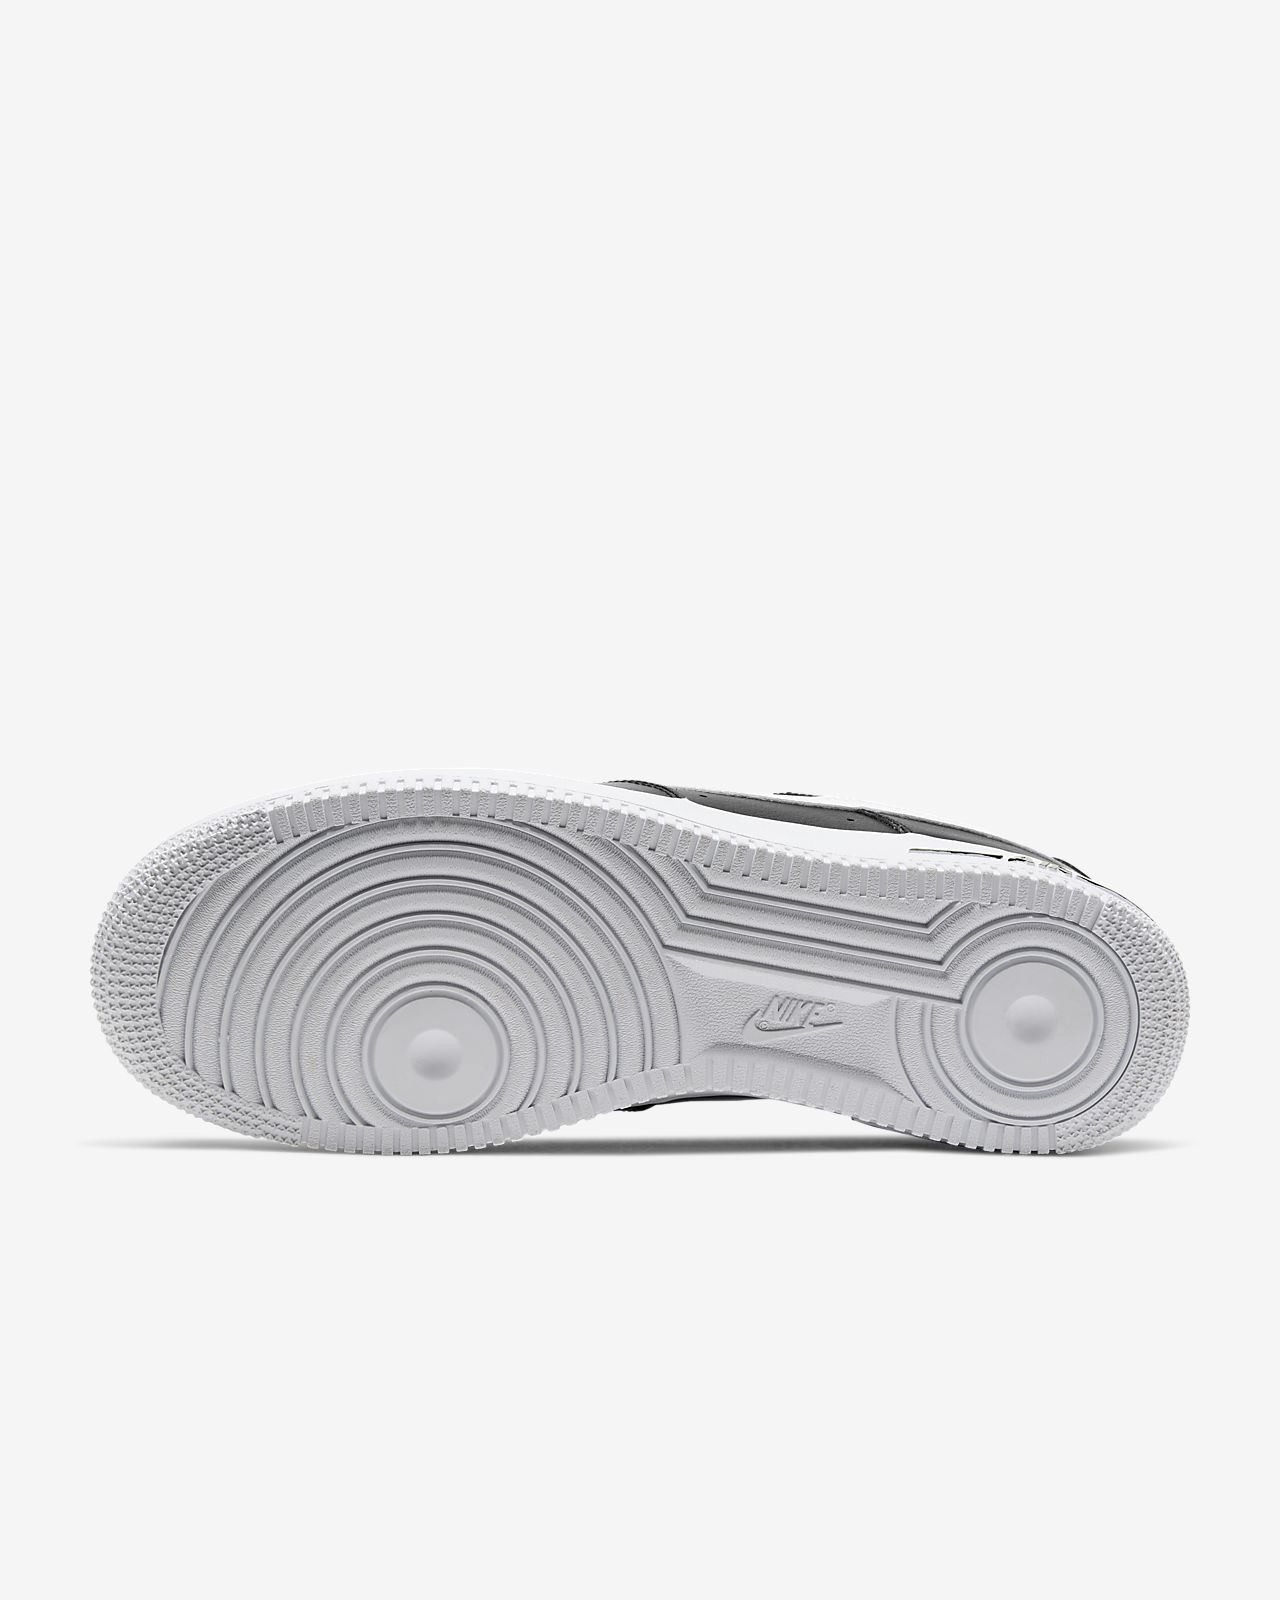 Nike Air Force 1 07 LV8 utility back and white | Tenis